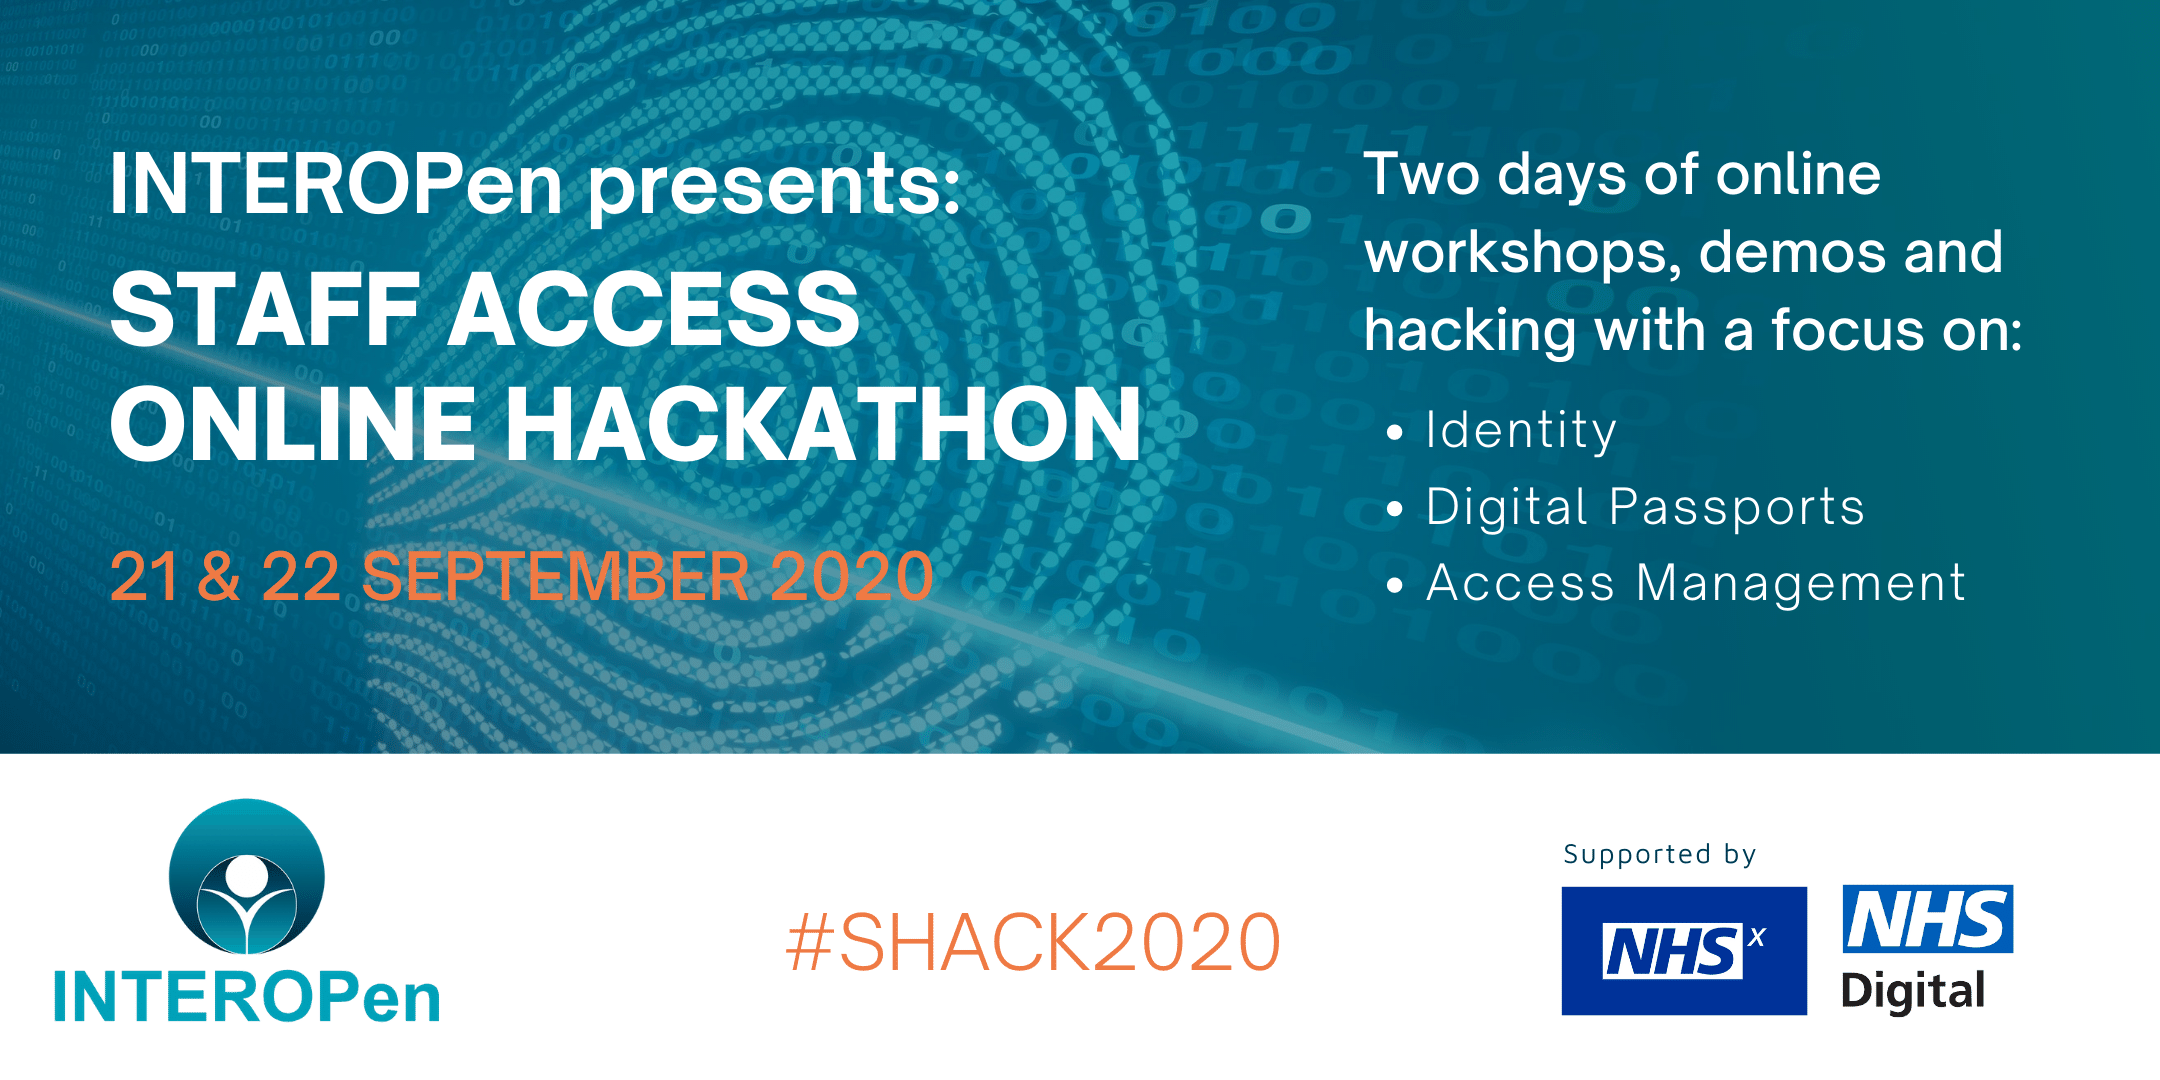 https://www.eventbrite.co.uk/e/interopen-presents-staff-access-hackathon-tickets-94396005995